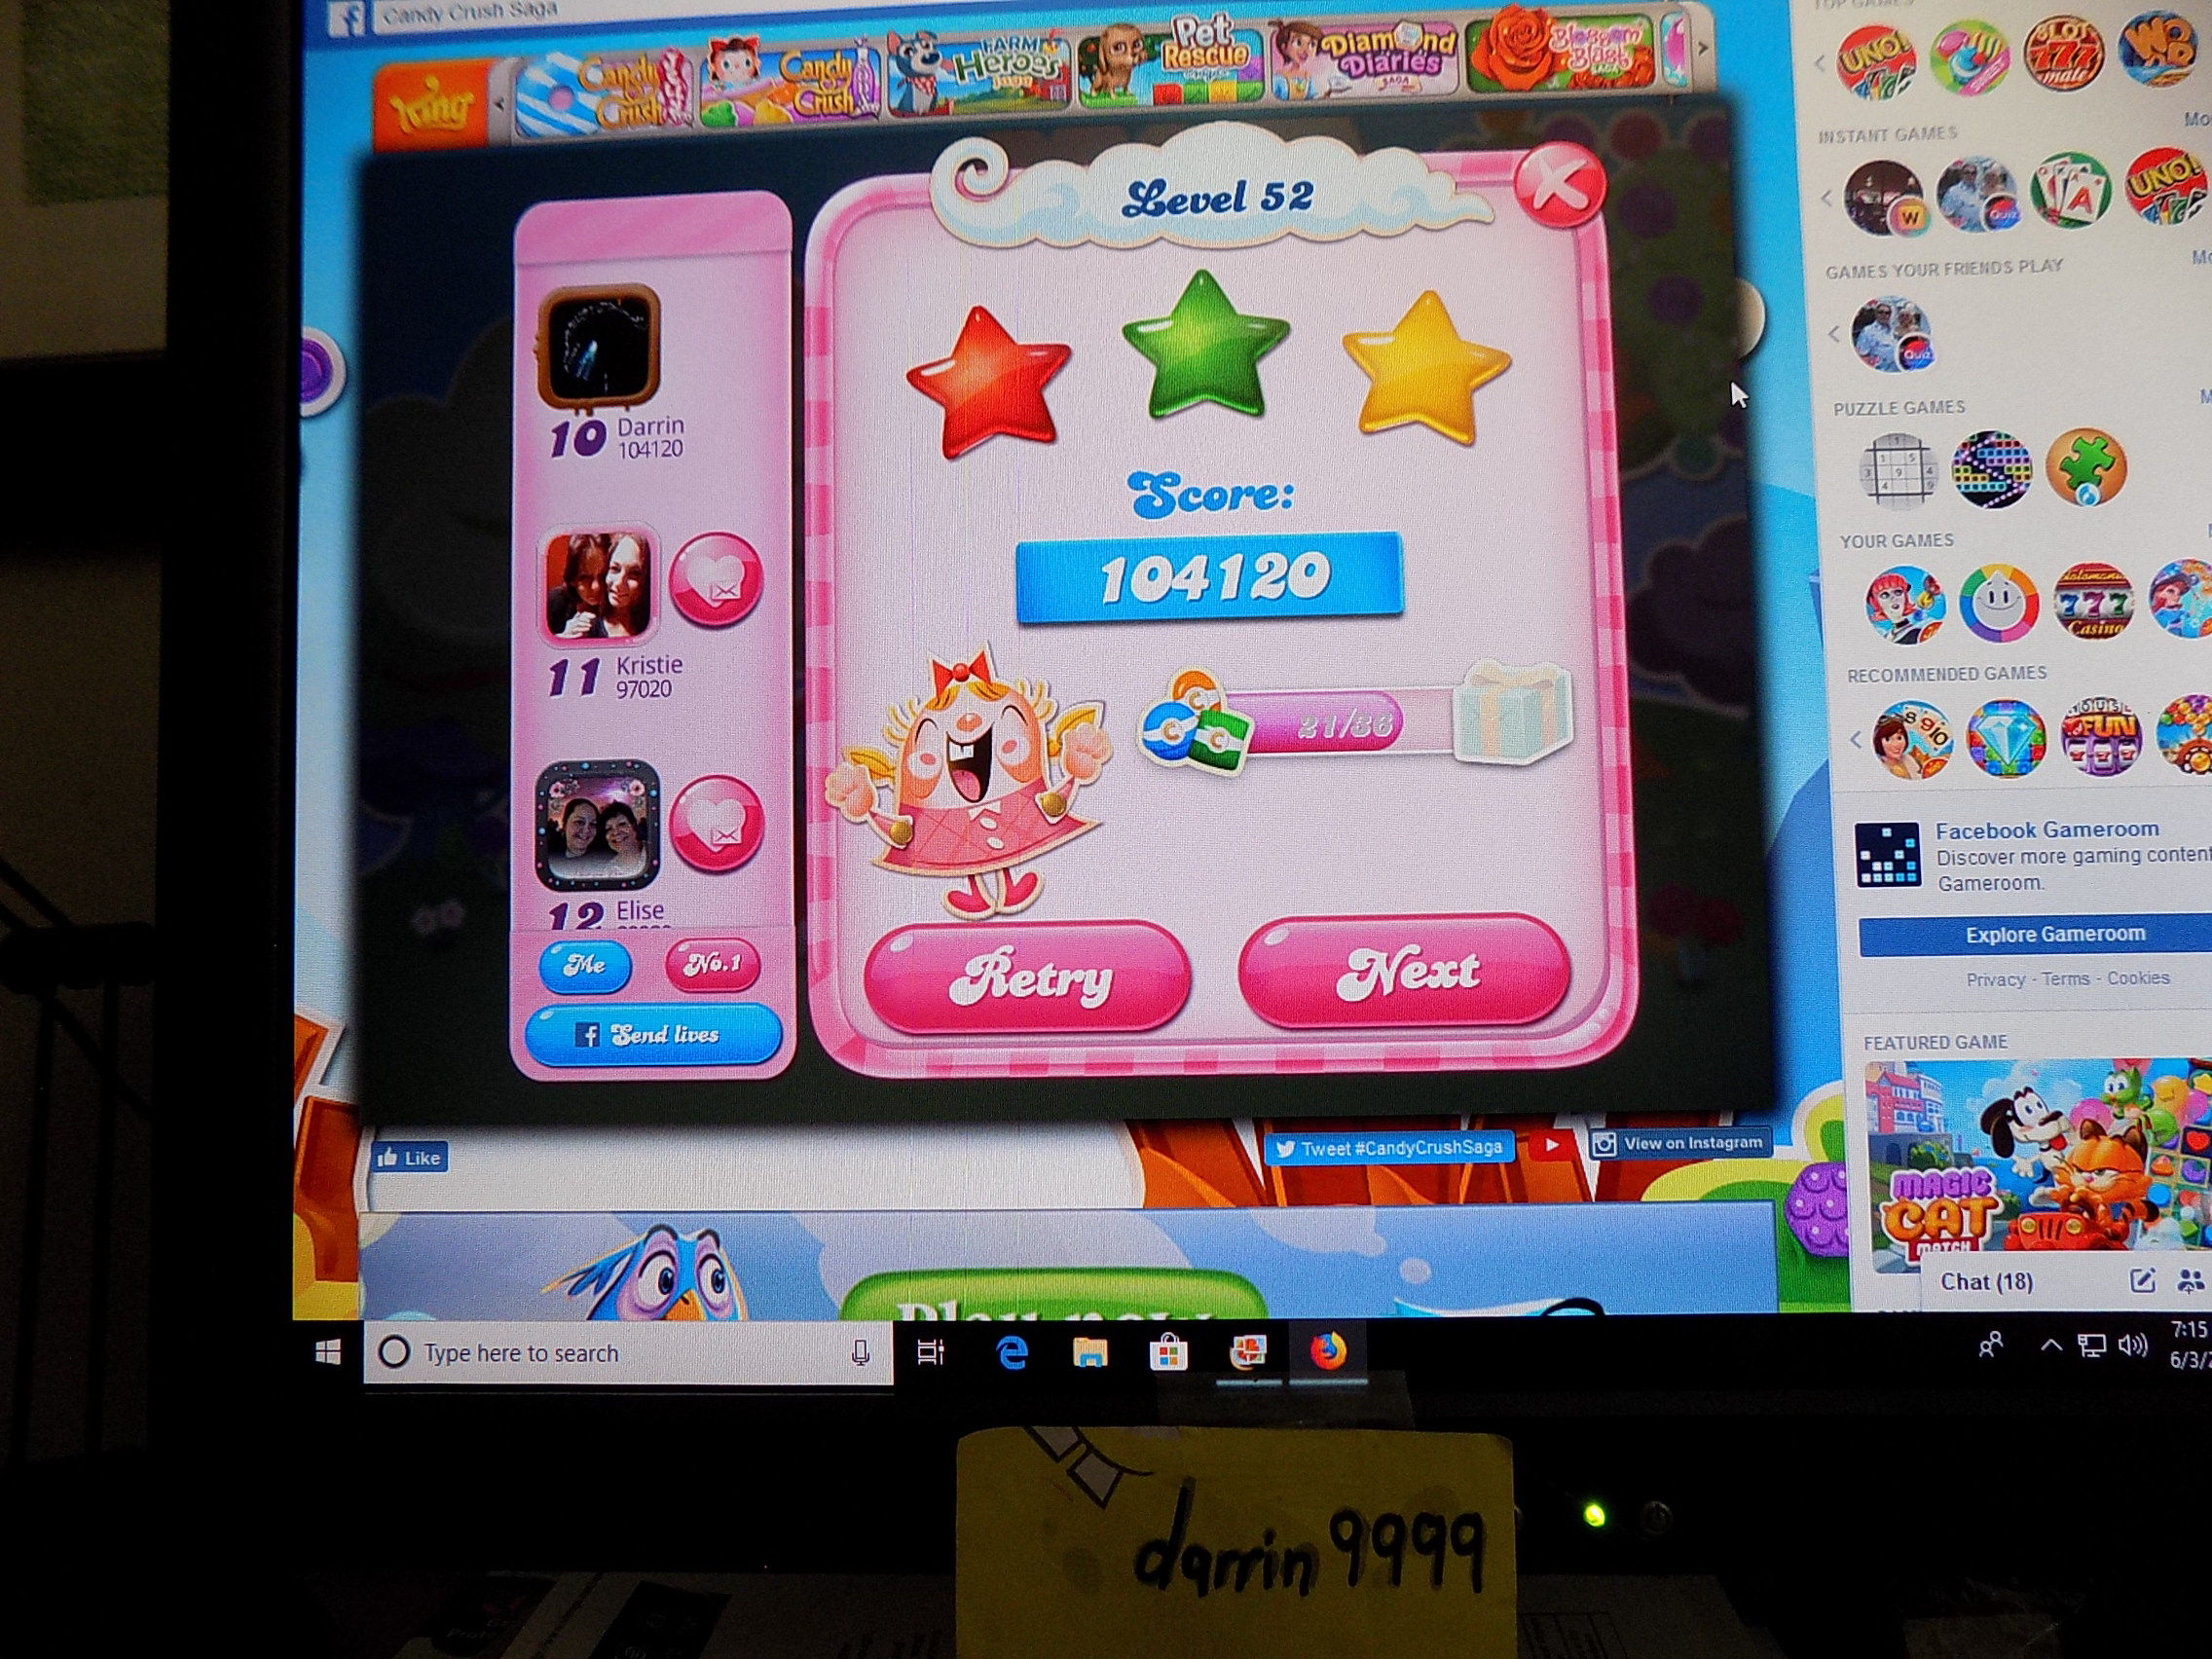 darrin9999: Candy Crush Saga: Level 052 (Web) 104,120 points on 2019-06-12 16:00:01